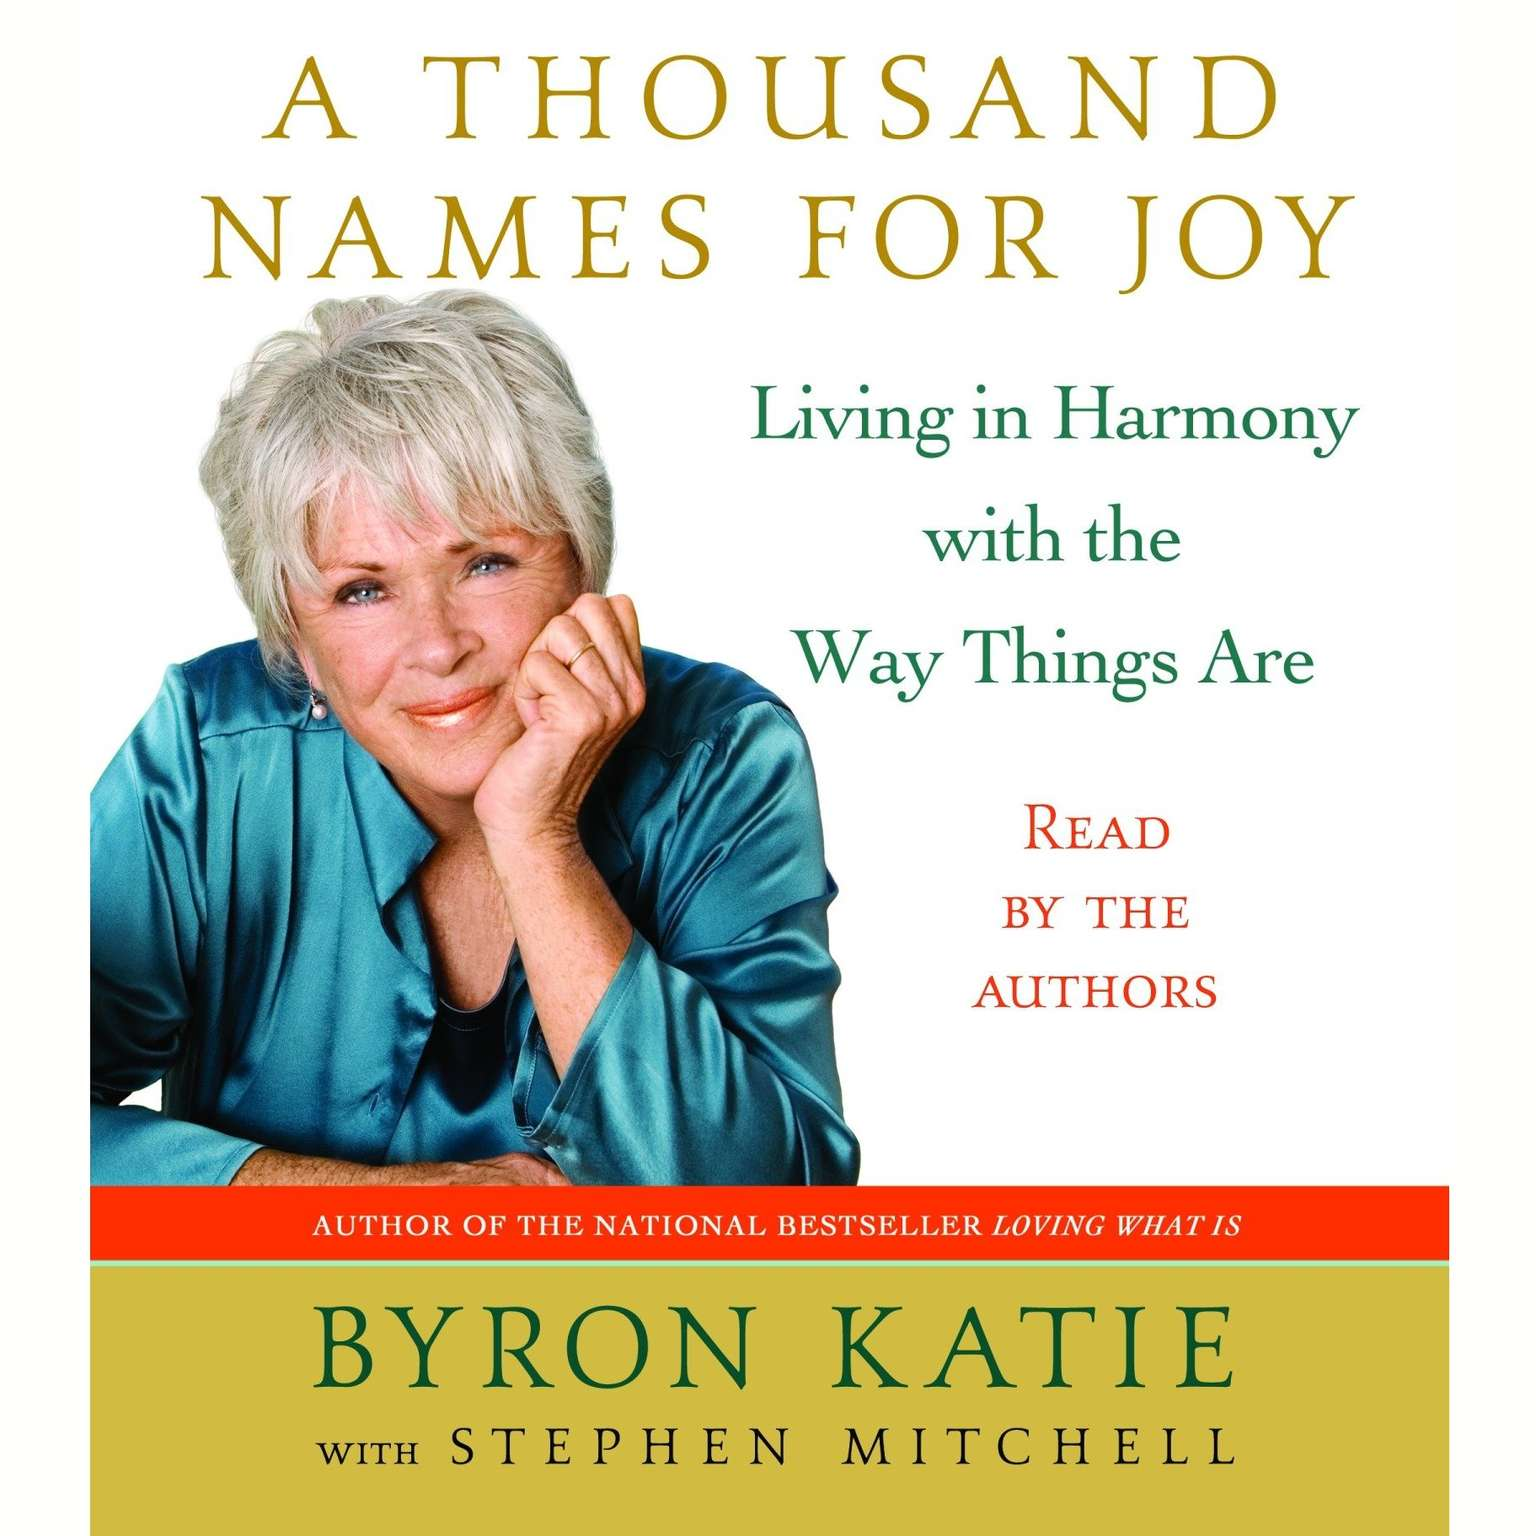 A Thousand Names for Joy (Abridged): Living in Harmony with the Way Things Are Audiobook, by Byron Katie